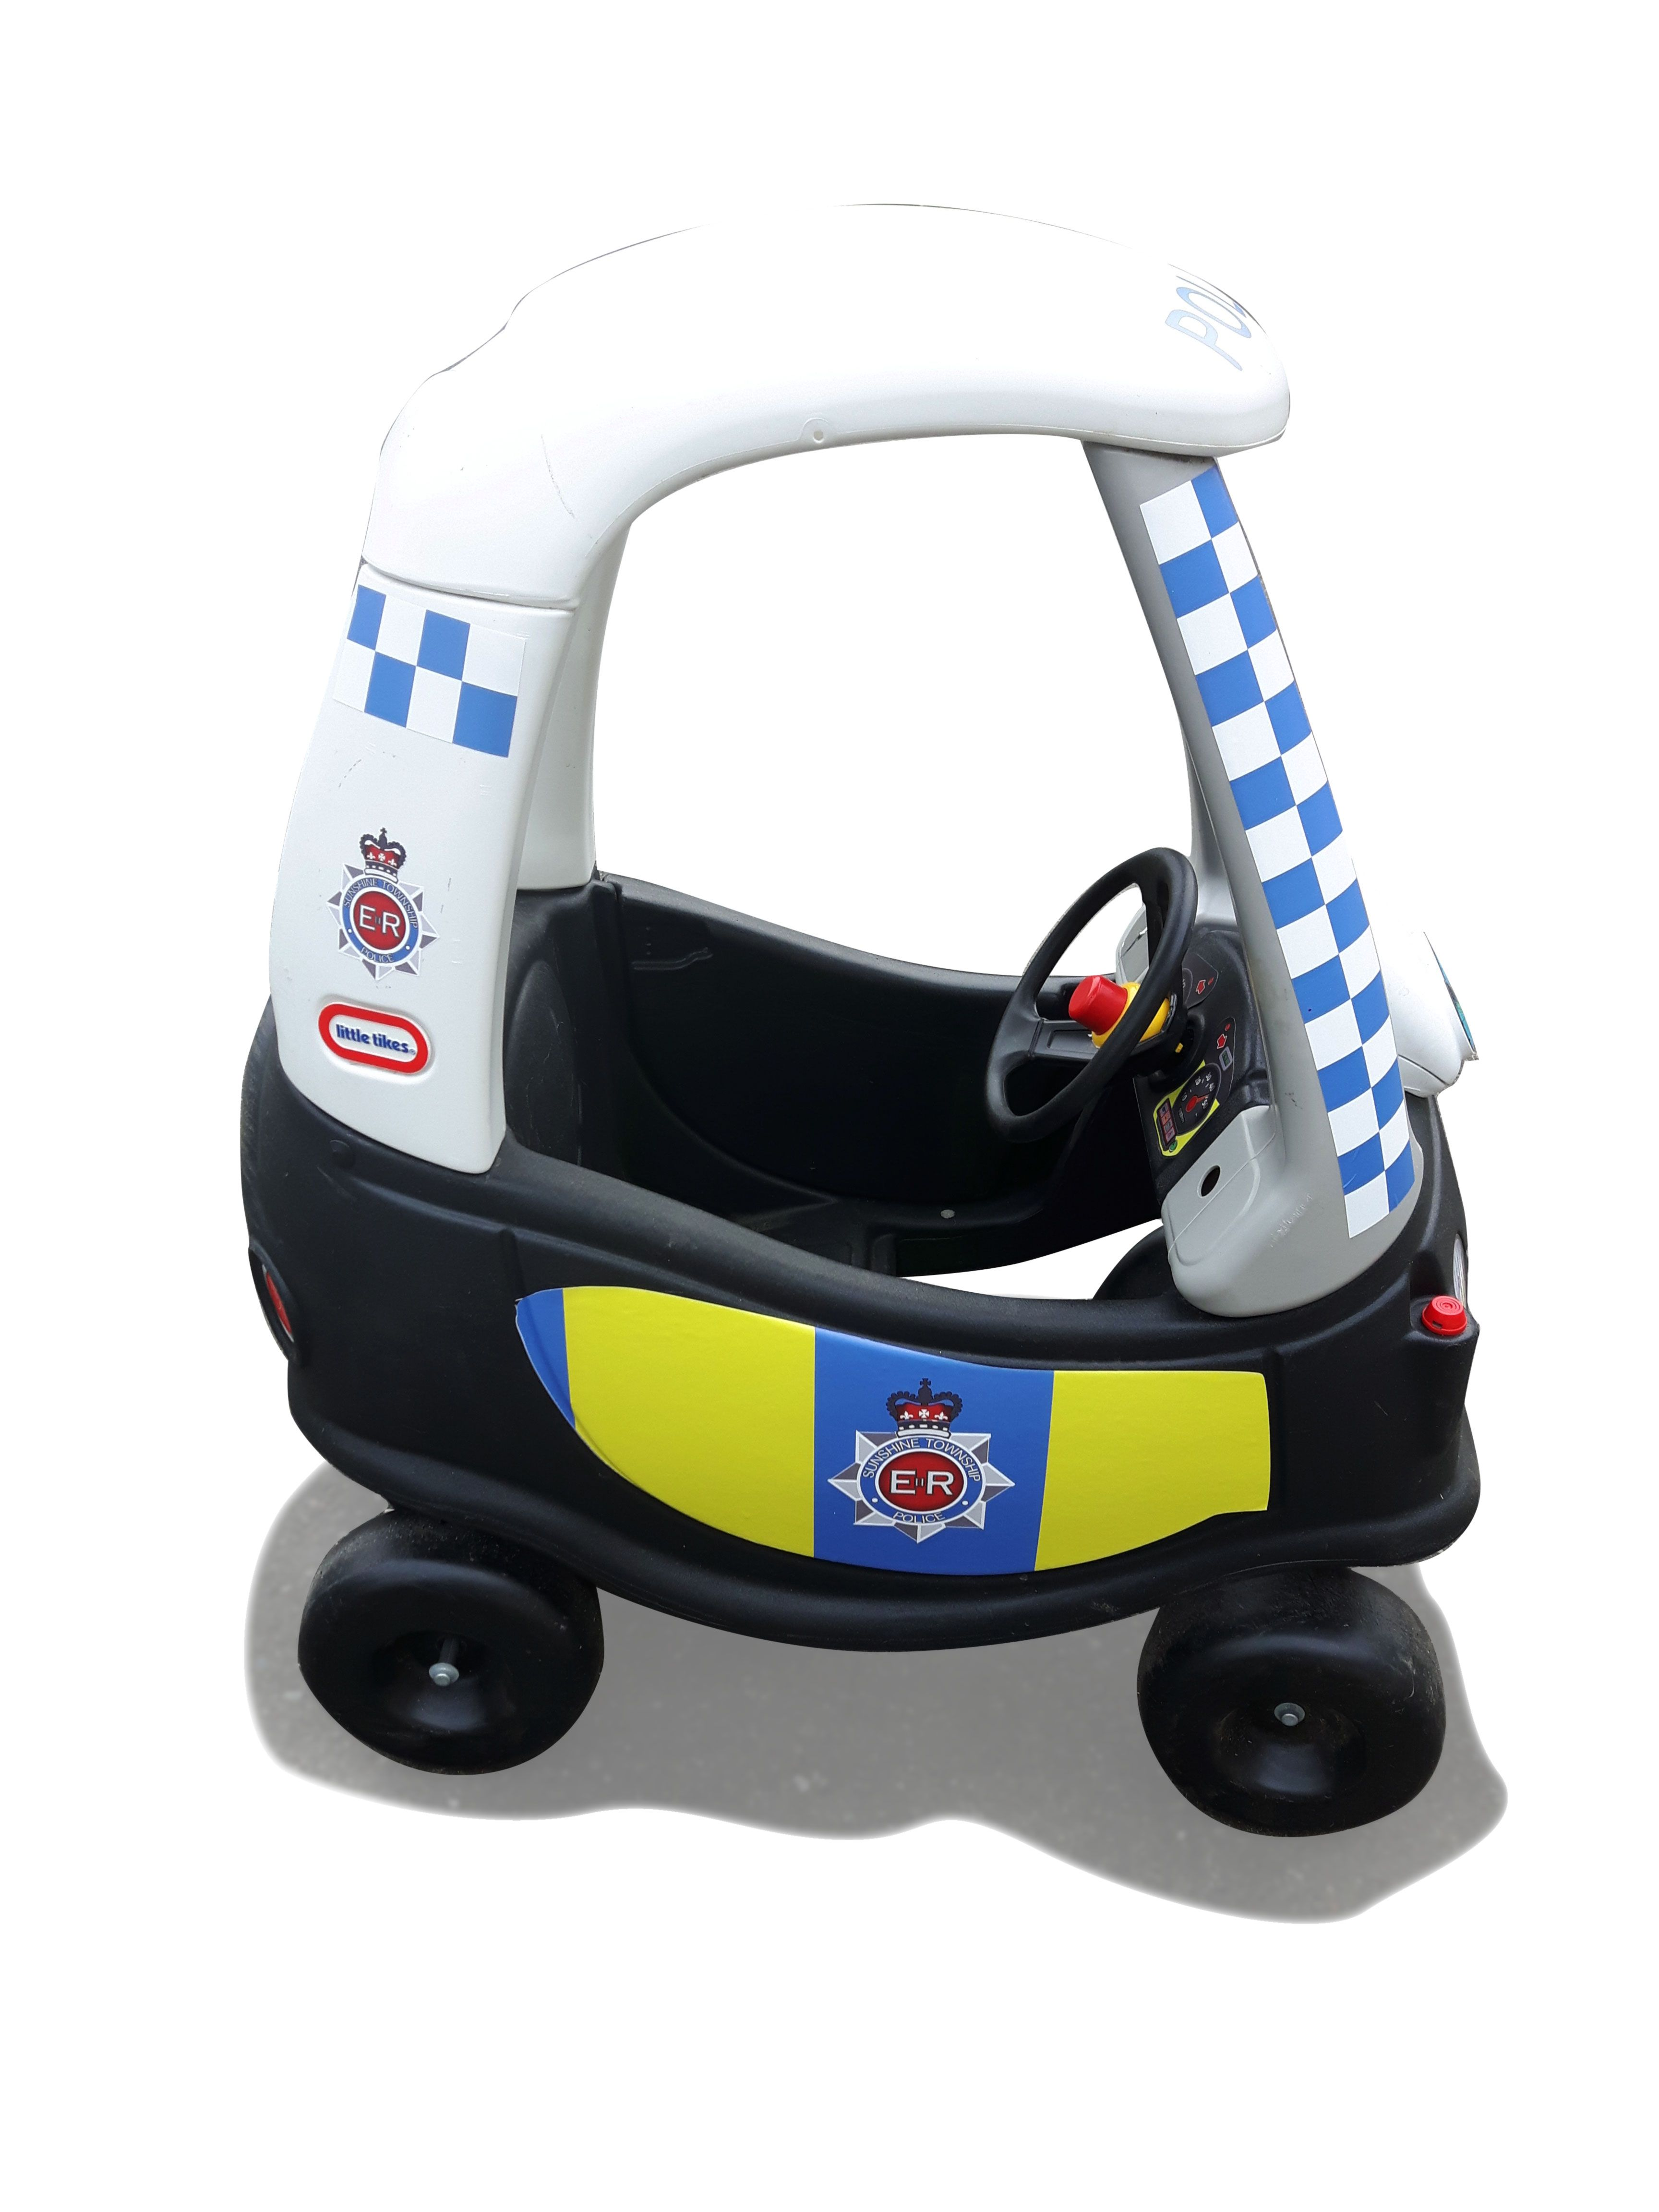 Police Cozycoupe Littletikes Littletykes Kidscar Cozycoupemakeover Upcycle Oldtonew Replacementpart Pimpmycoup Cozy Coupe Little Tikes Baby Car Seats [ 4608 x 3456 Pixel ]